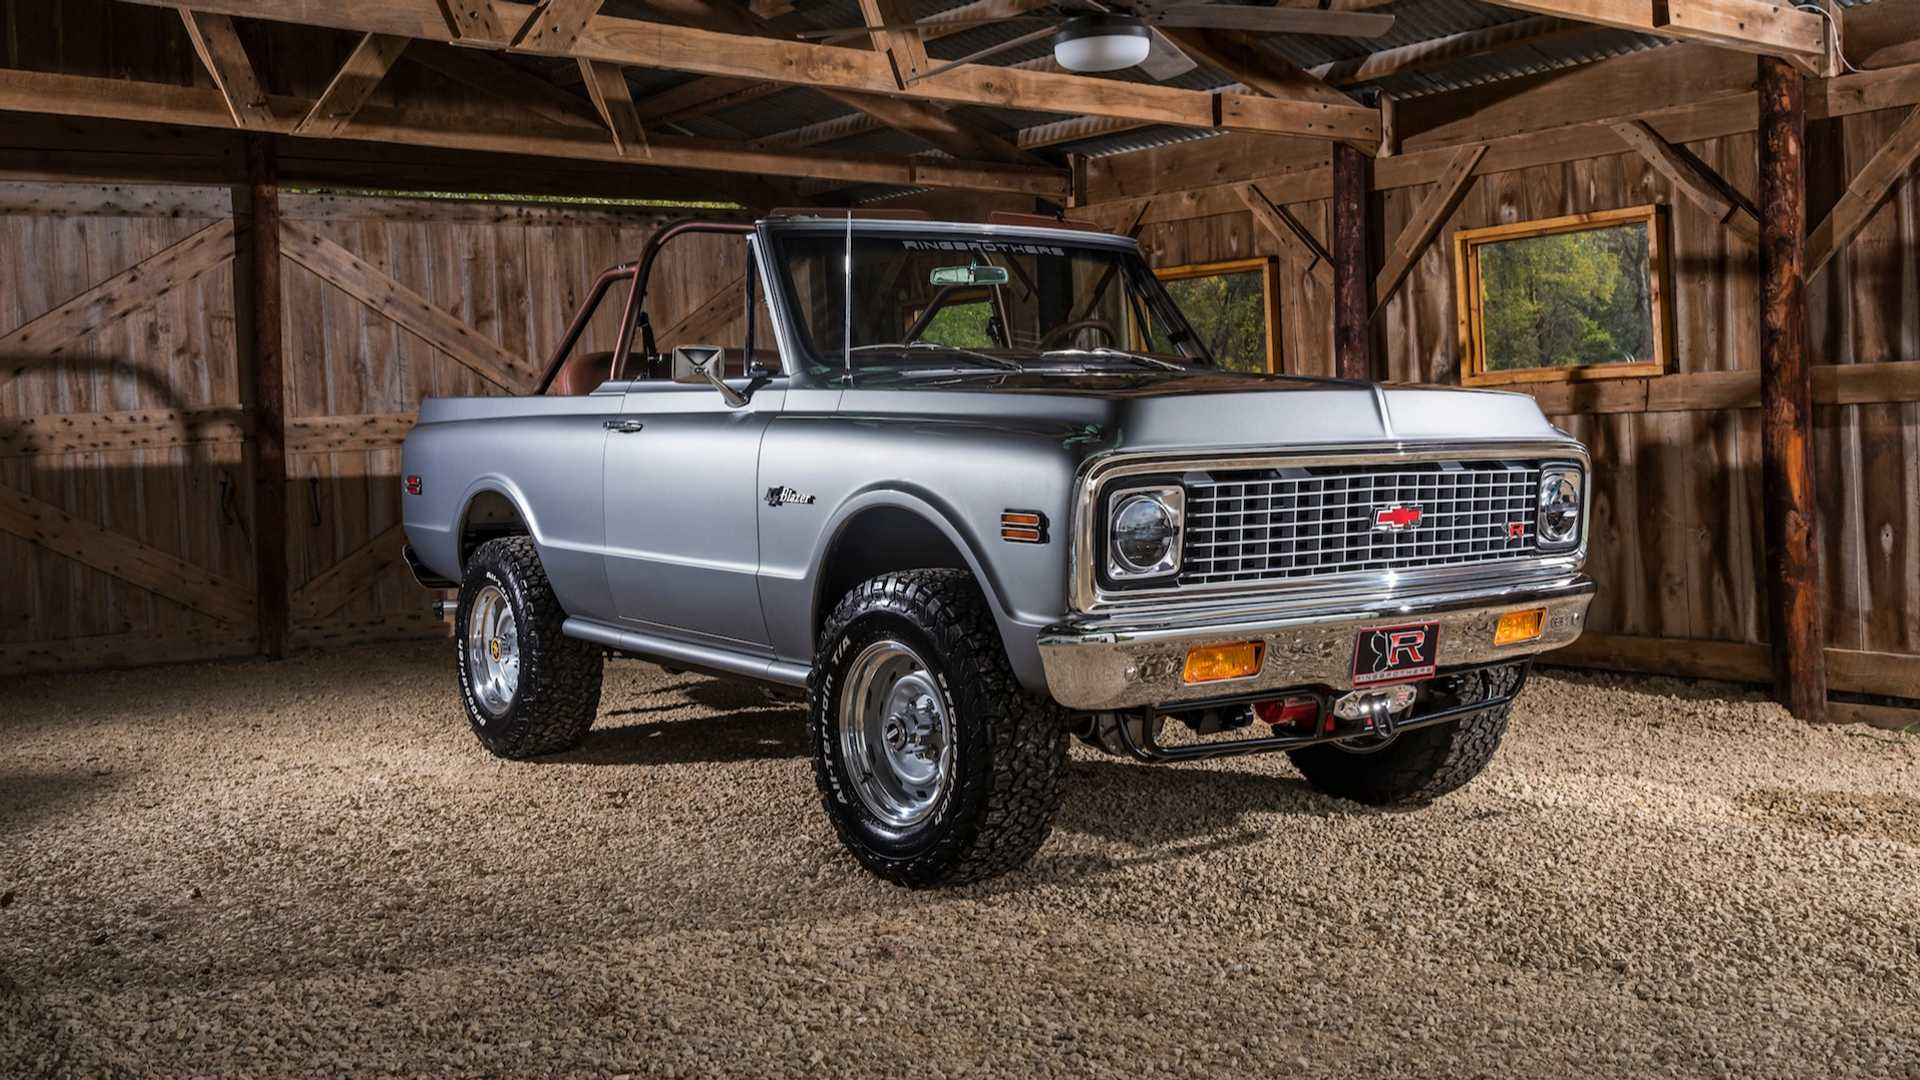 2018 K5 Chevy Blazer Restomod By Ringbrothers Pictures ...